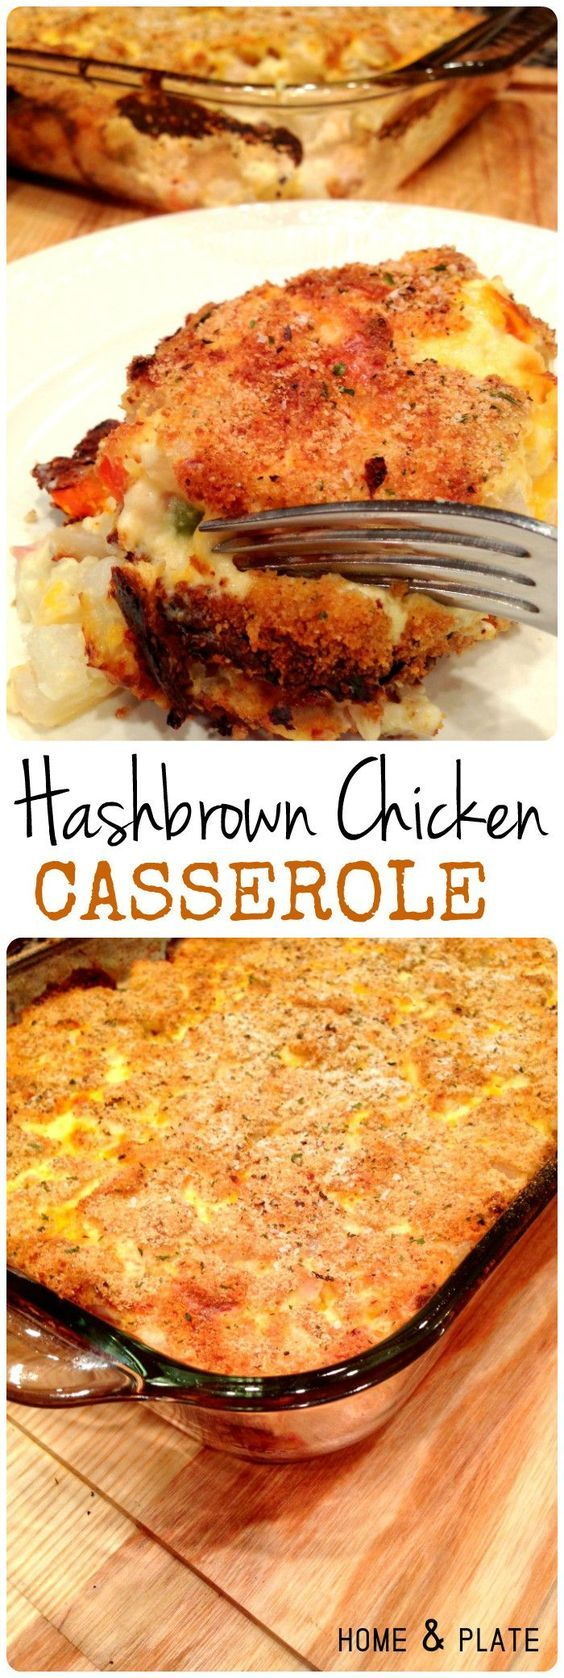 Hash Brown Chicken Casserole | Home & Plate | www.homeandplate.com | This casserole has tender bits of roasted chicken breast, hash brown potatoes, shredded cheddar cheese and your favorite mixed vegetables.